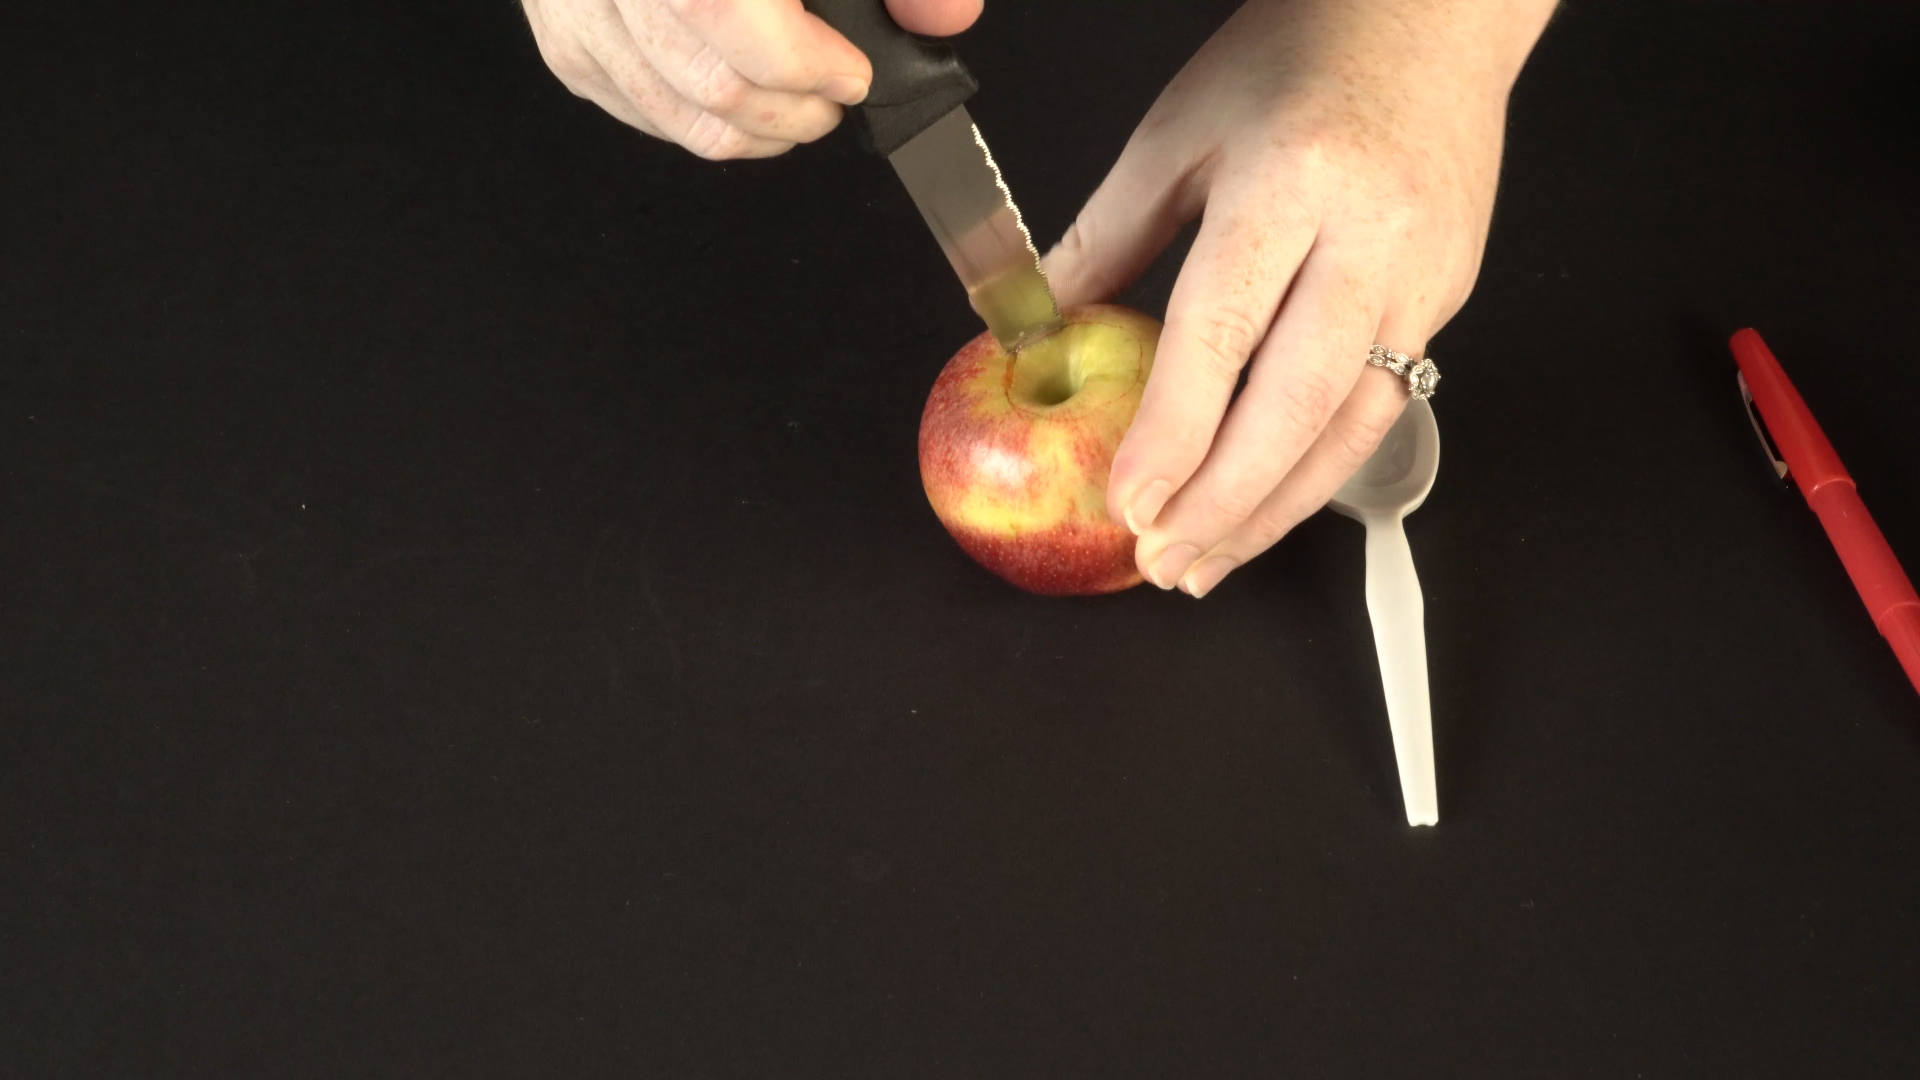 Halloween crafts with color-changing led tea lights - floating apples step 2